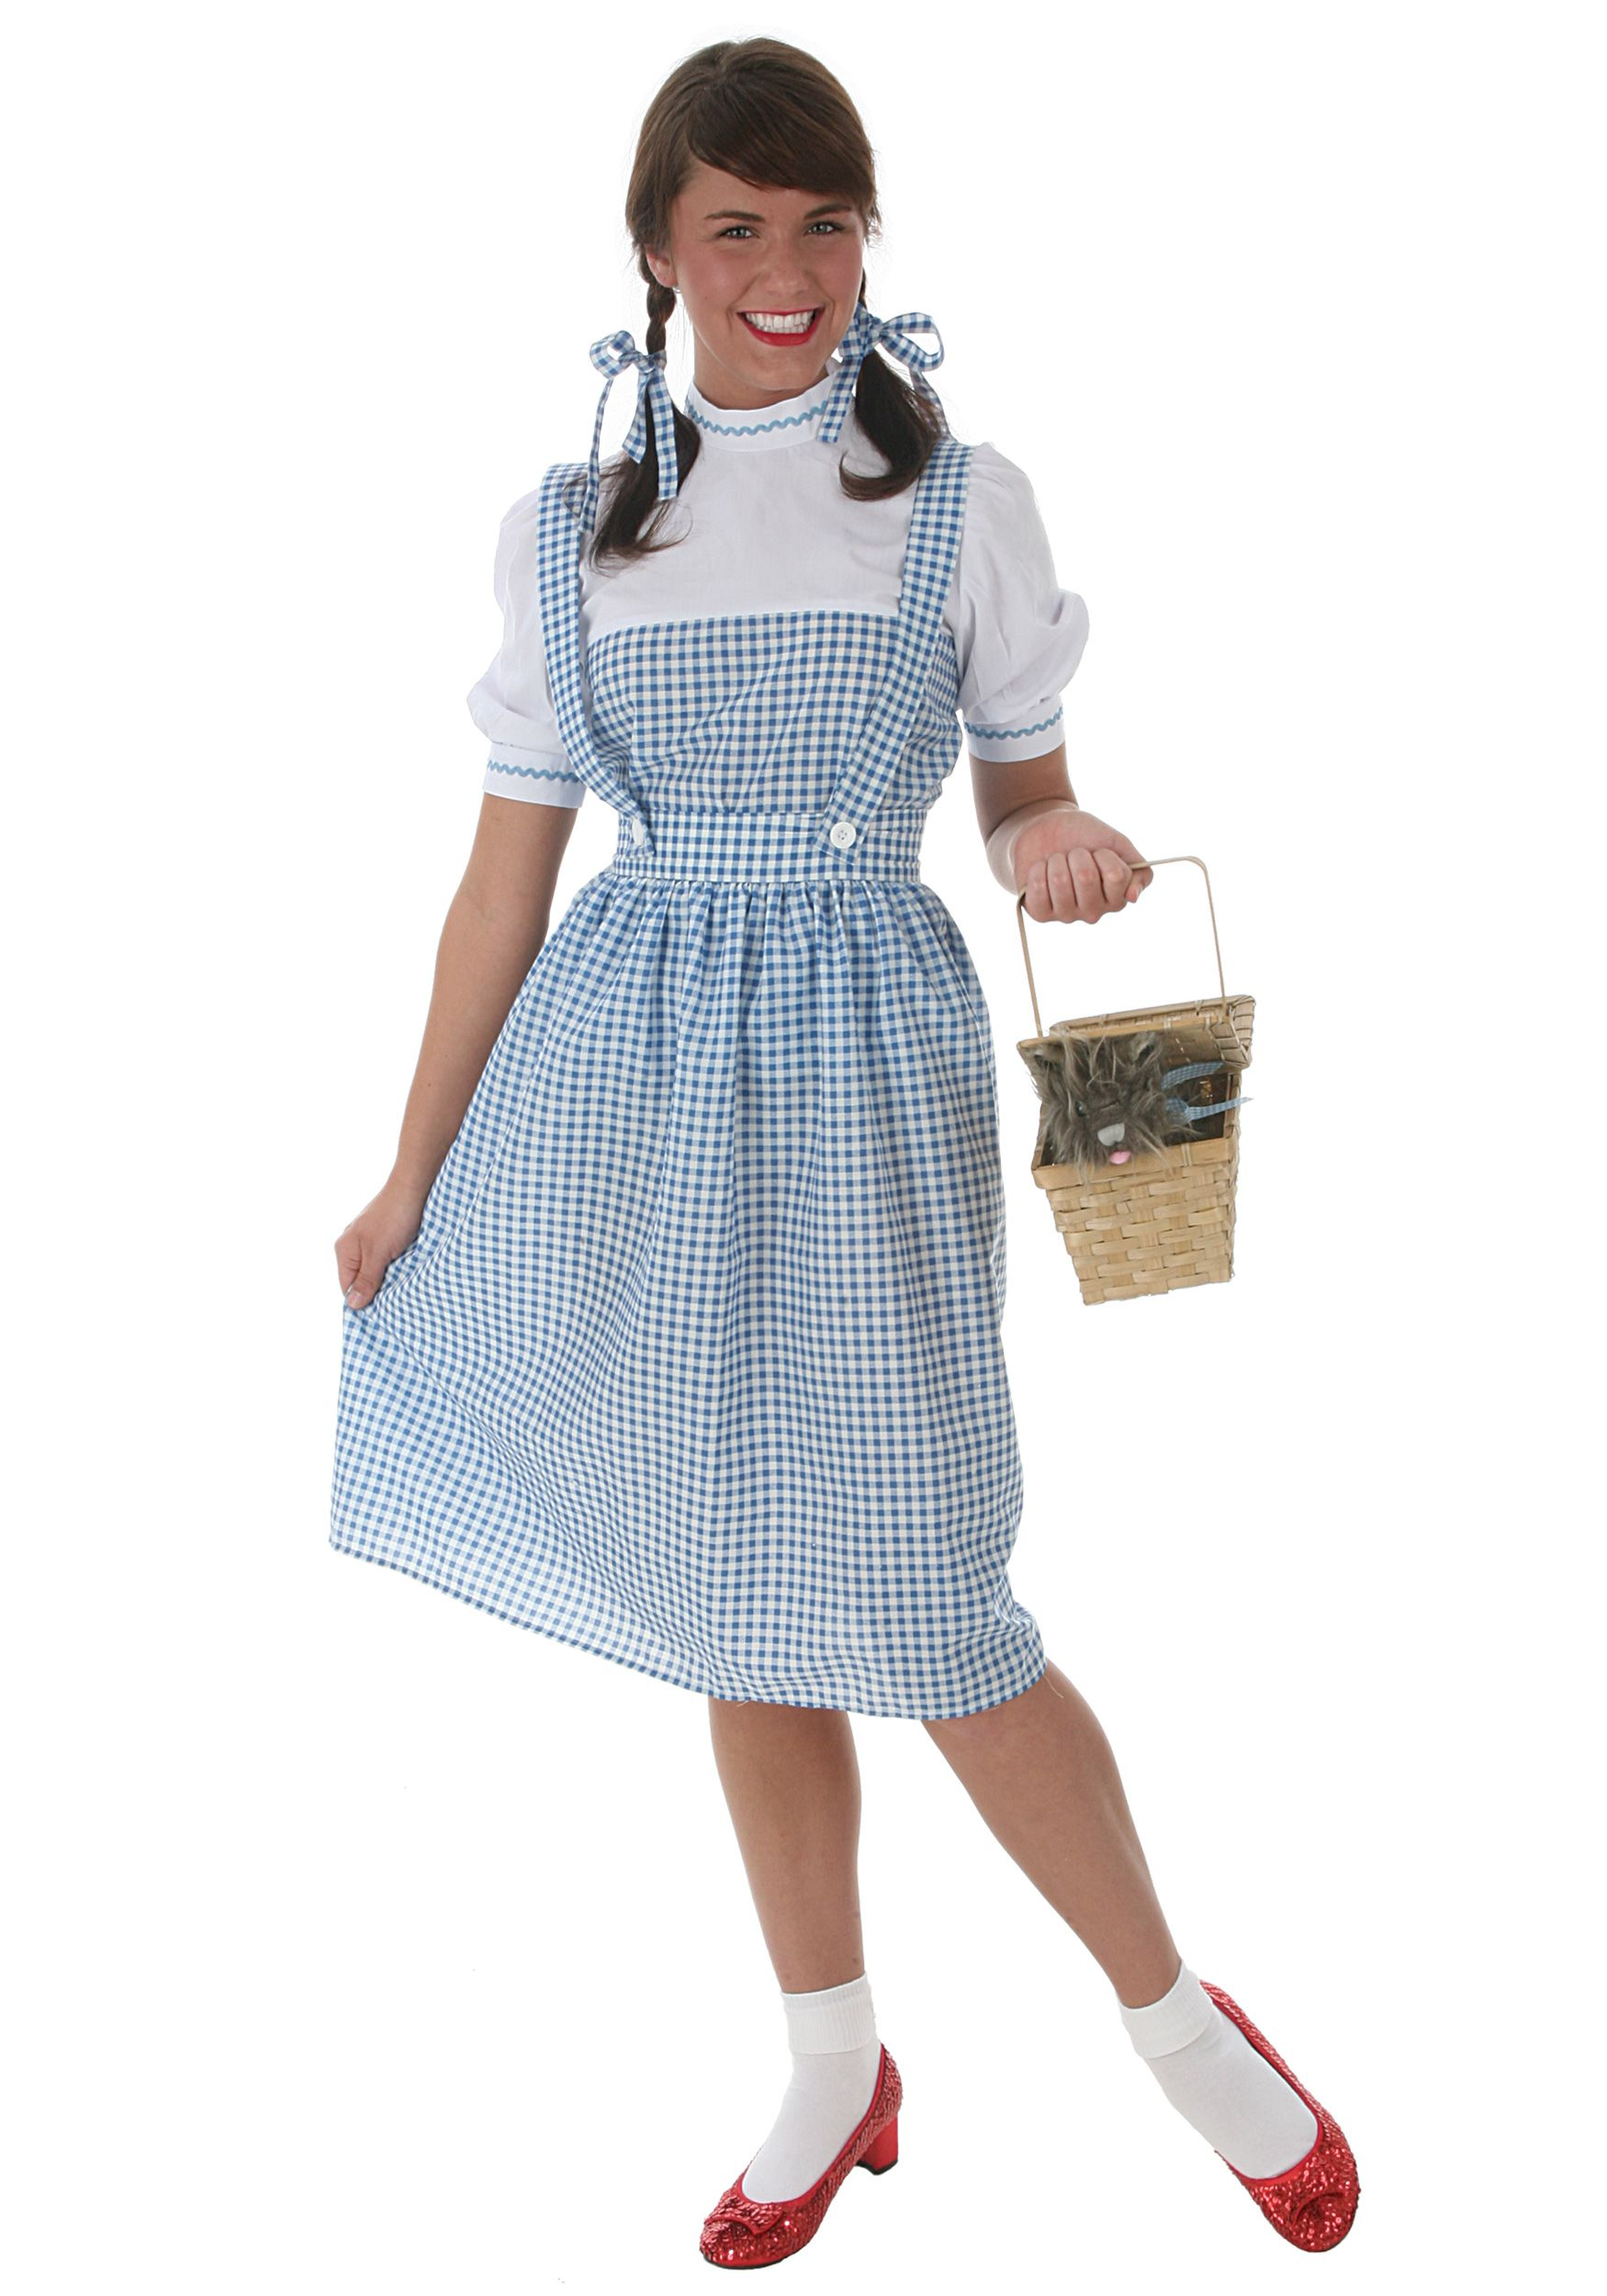 478ac8a340403 Wizard of Oz Dorothy Costume   Halloween Costumes   Pinterest ...